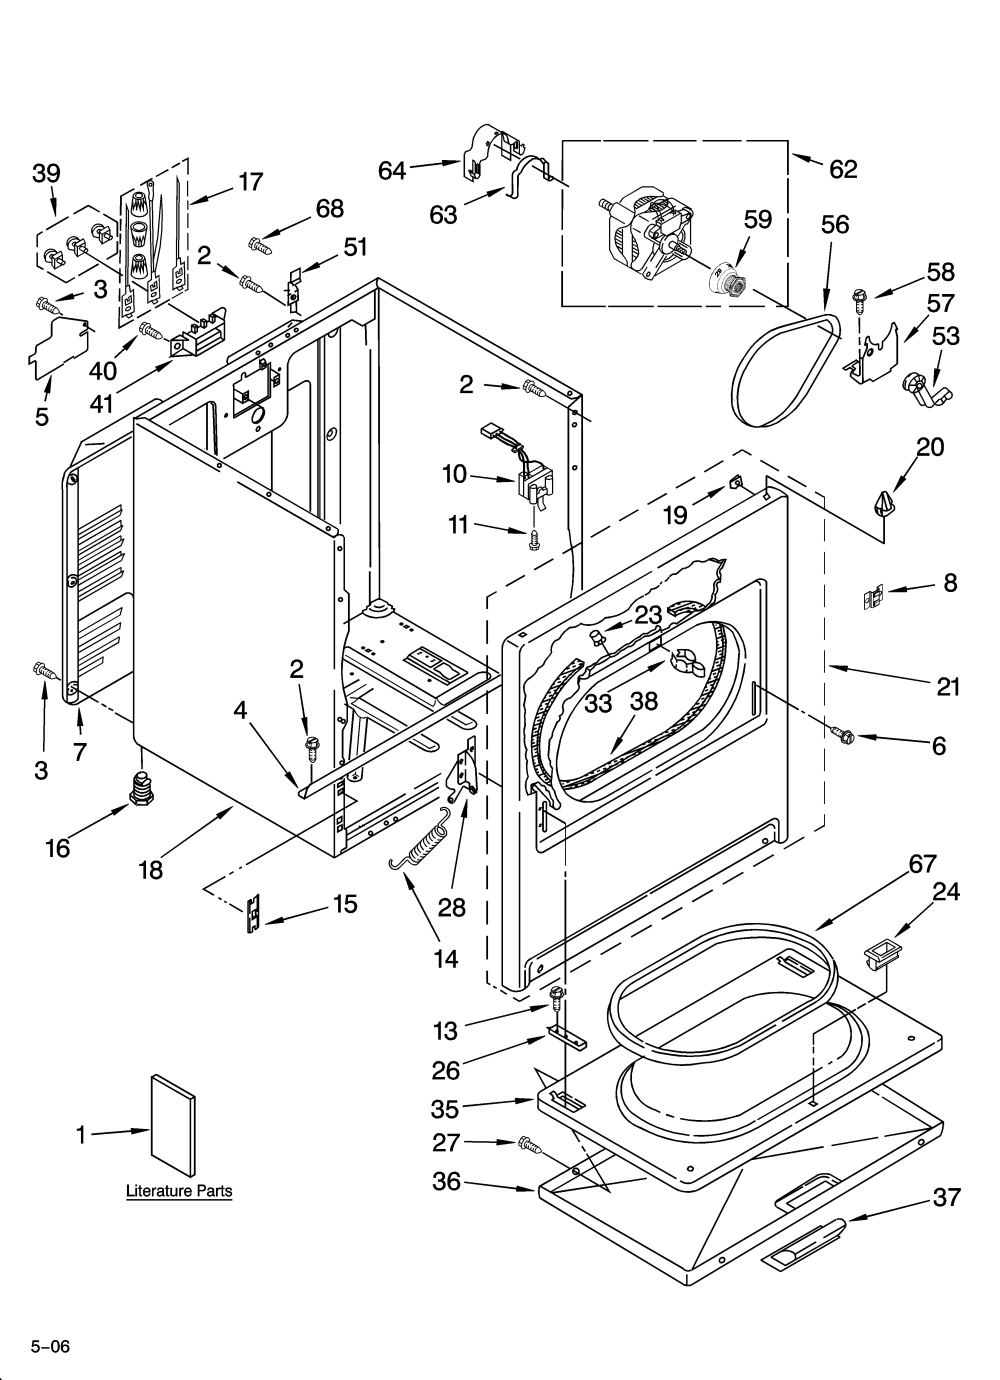 medium resolution of w0607154 00001 whirlpool residential dryer parts model wed5500sq0 sears at highcare asia whirlpool wed5500sq0 wiring diagram